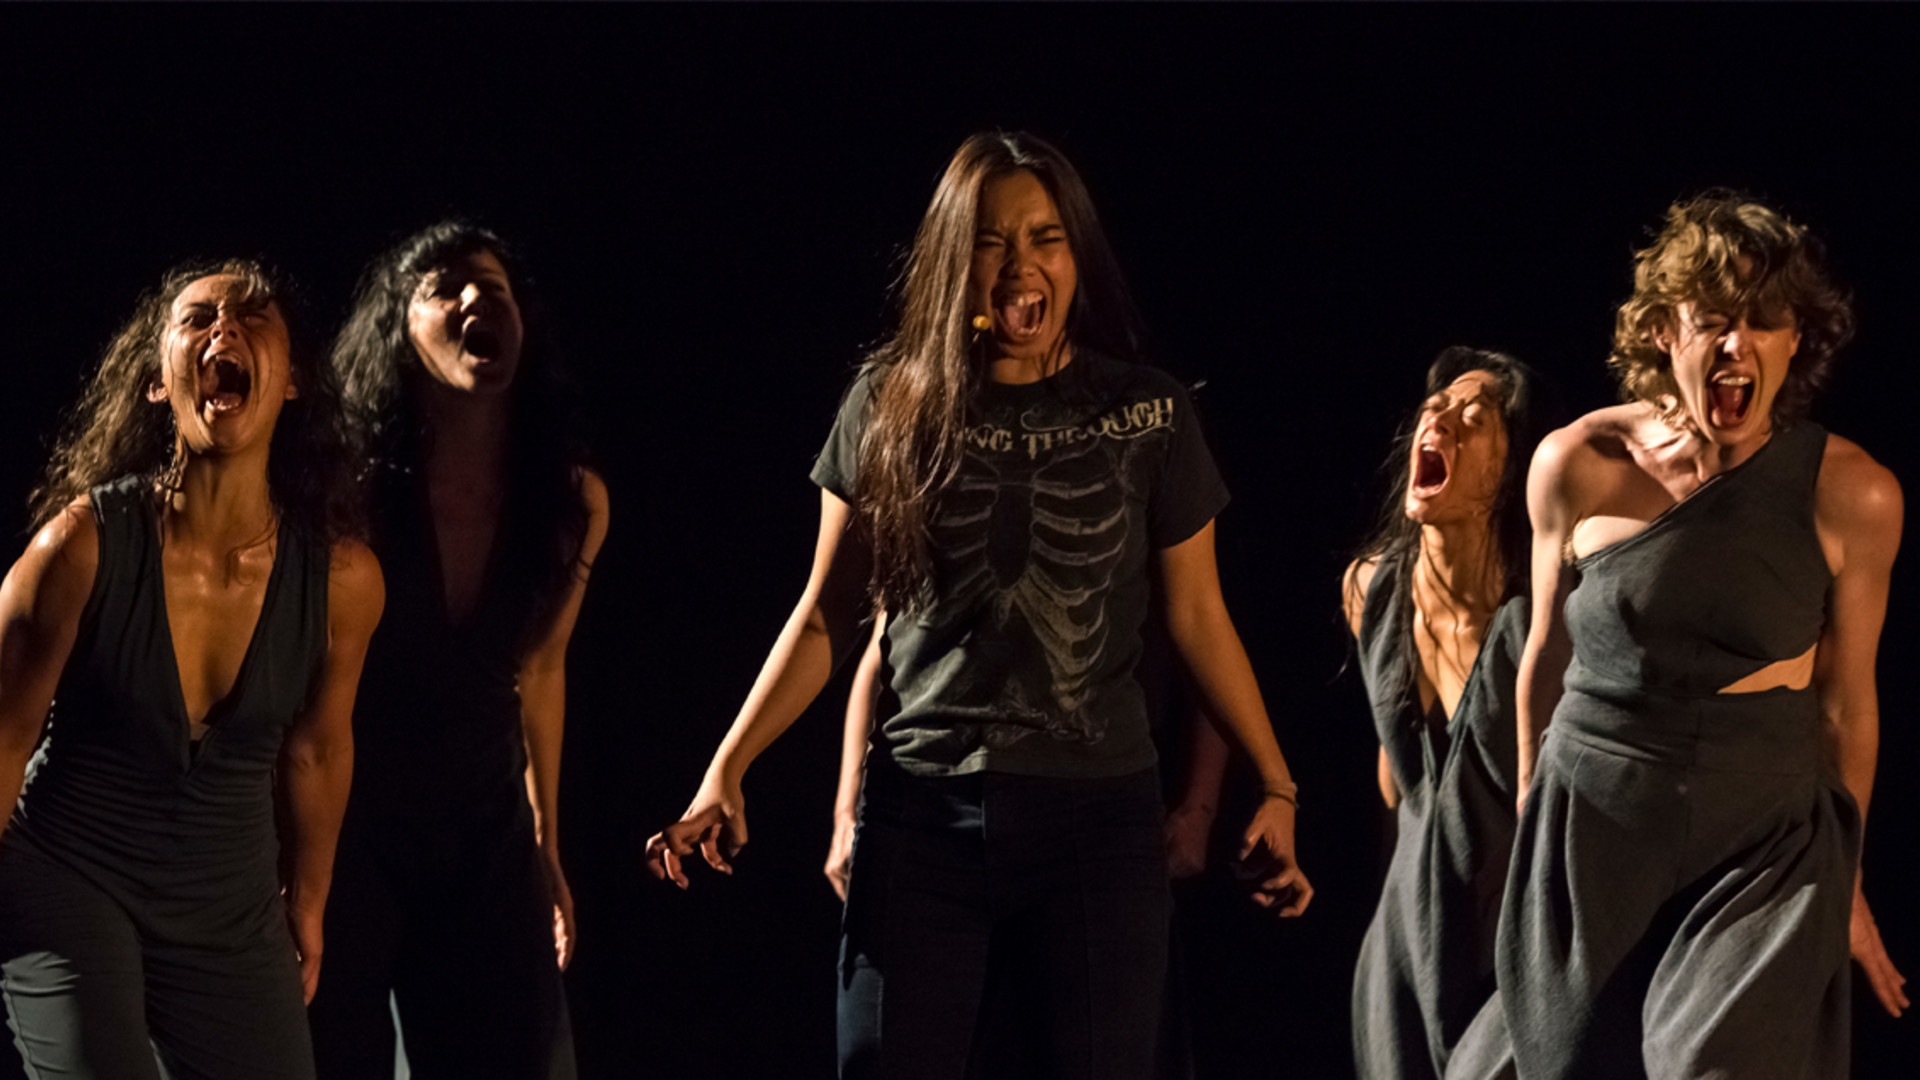 A singer in the centre, surrounded by four dancers, all screaming with their fists clenched.